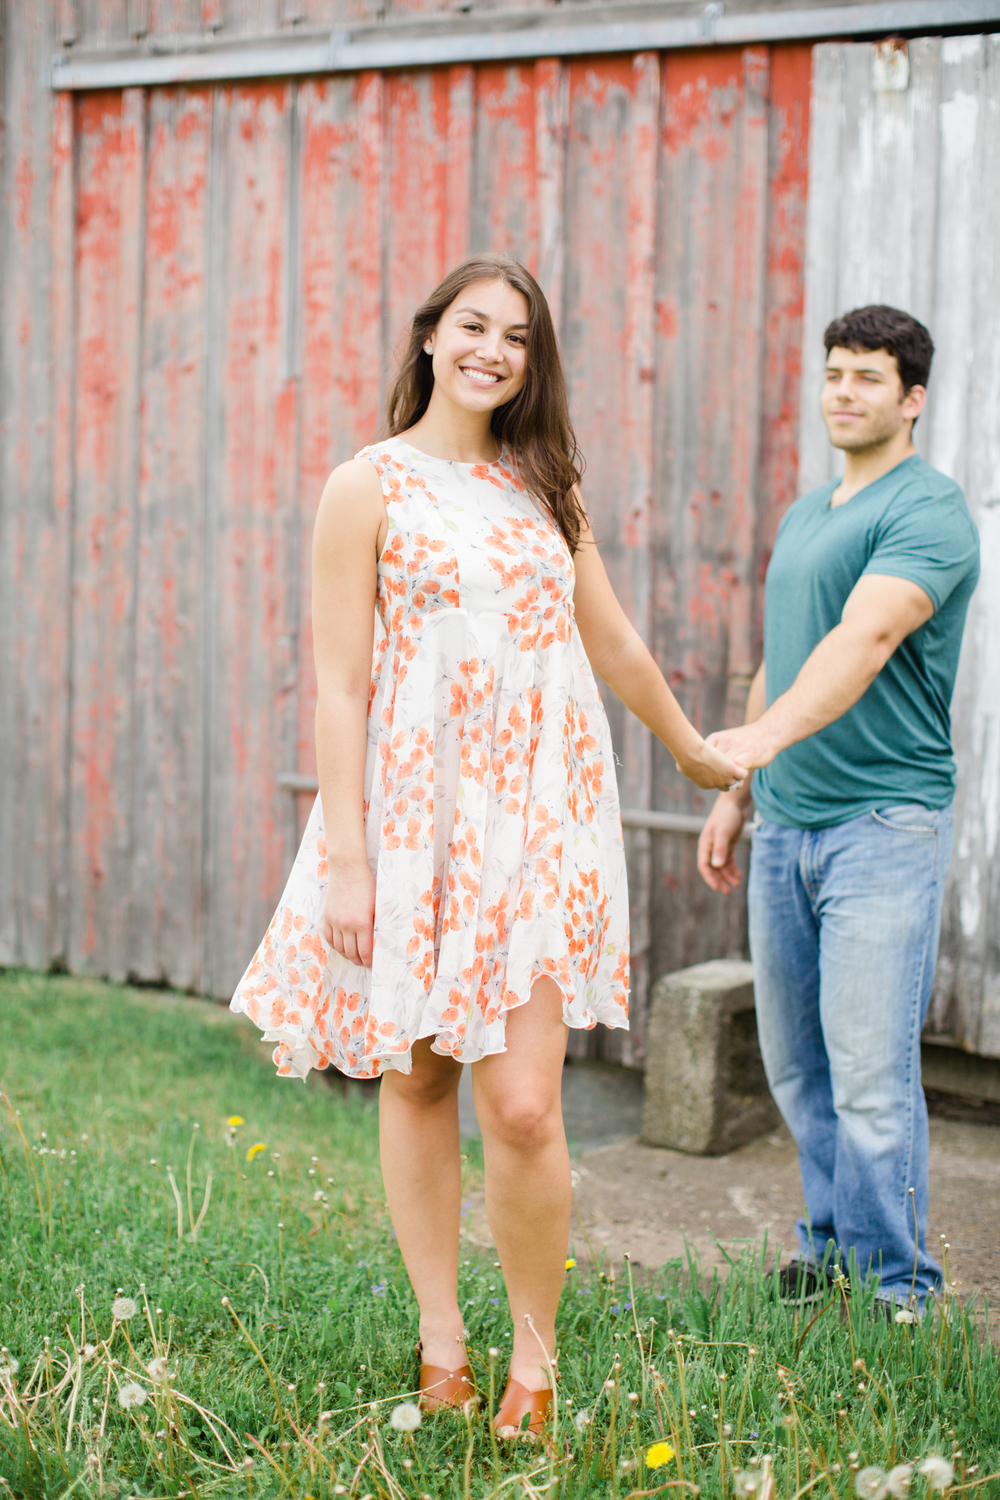 Scranton PA Rustic Romantic Engagement Session Photographers Jordan DeNike_JDP-64.jpg